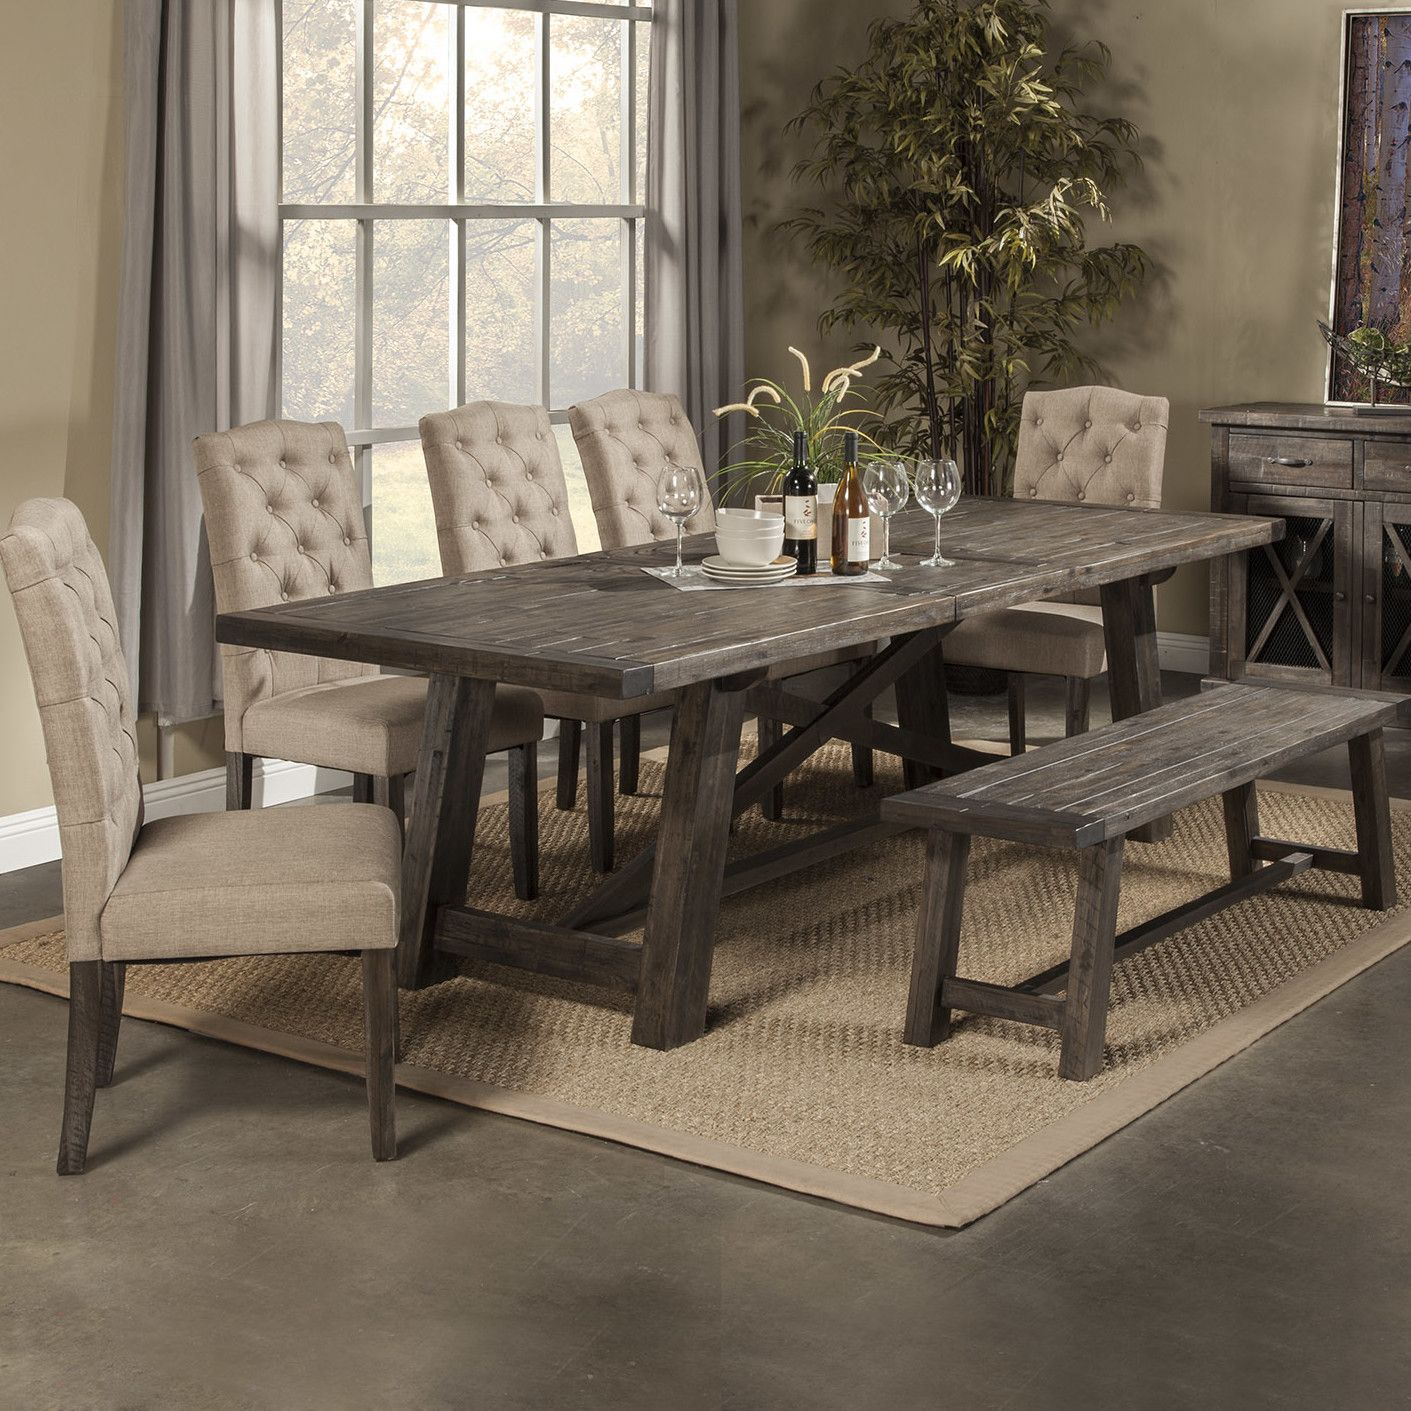 Stylish Dining Sets Perfect For Growing Families. Rustic Dining SetKitchen Dining  Sets7 Piece ...